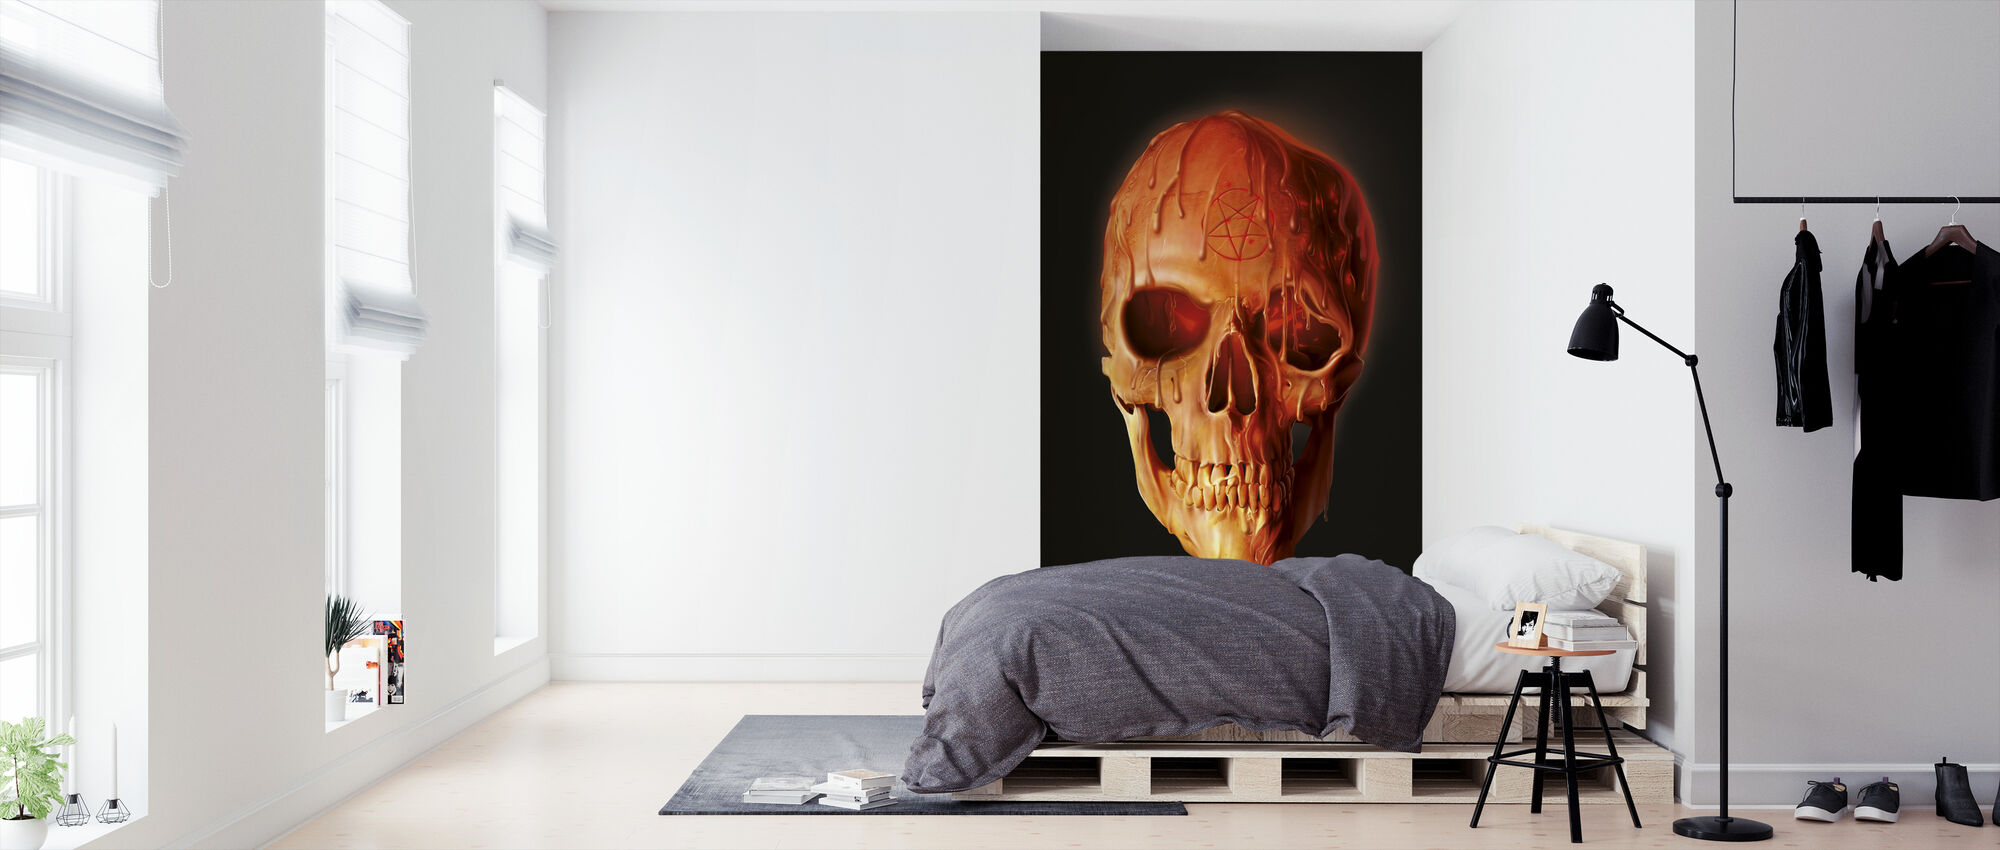 Wax Skull - Wallpaper - Bedroom